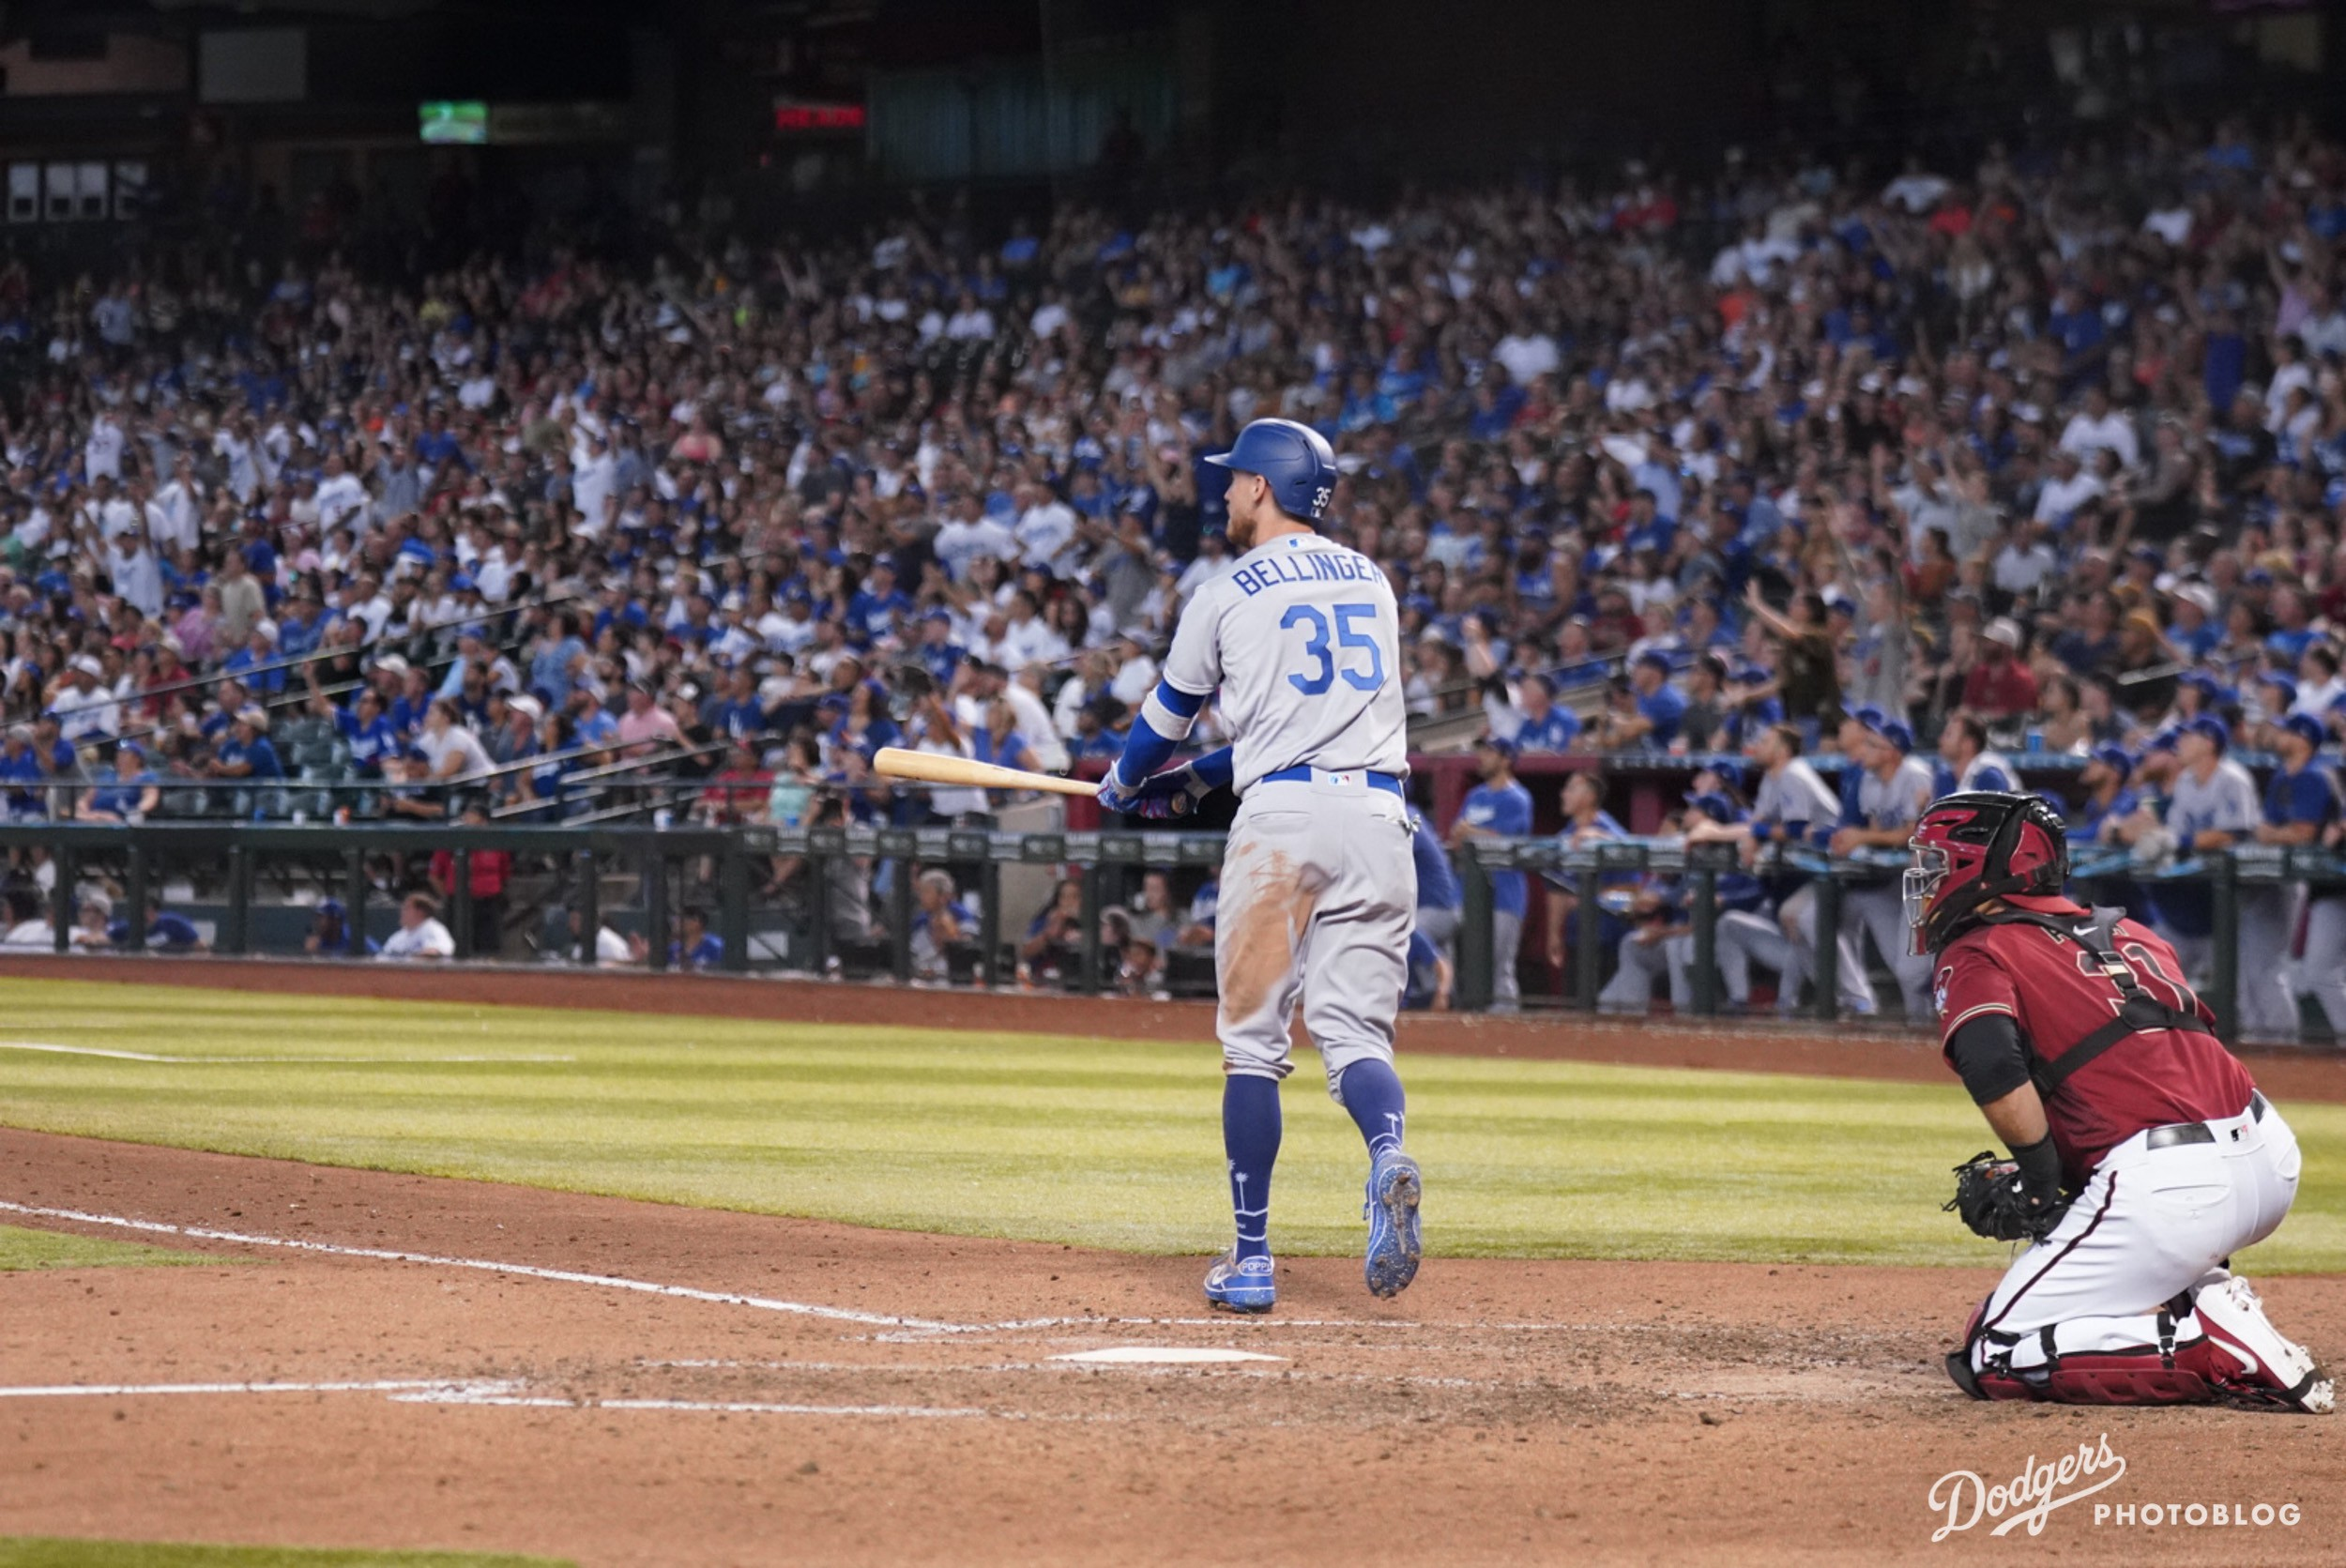 Cody Bellinger knows he got all of that one. Hans Rodriguez/MLB.com